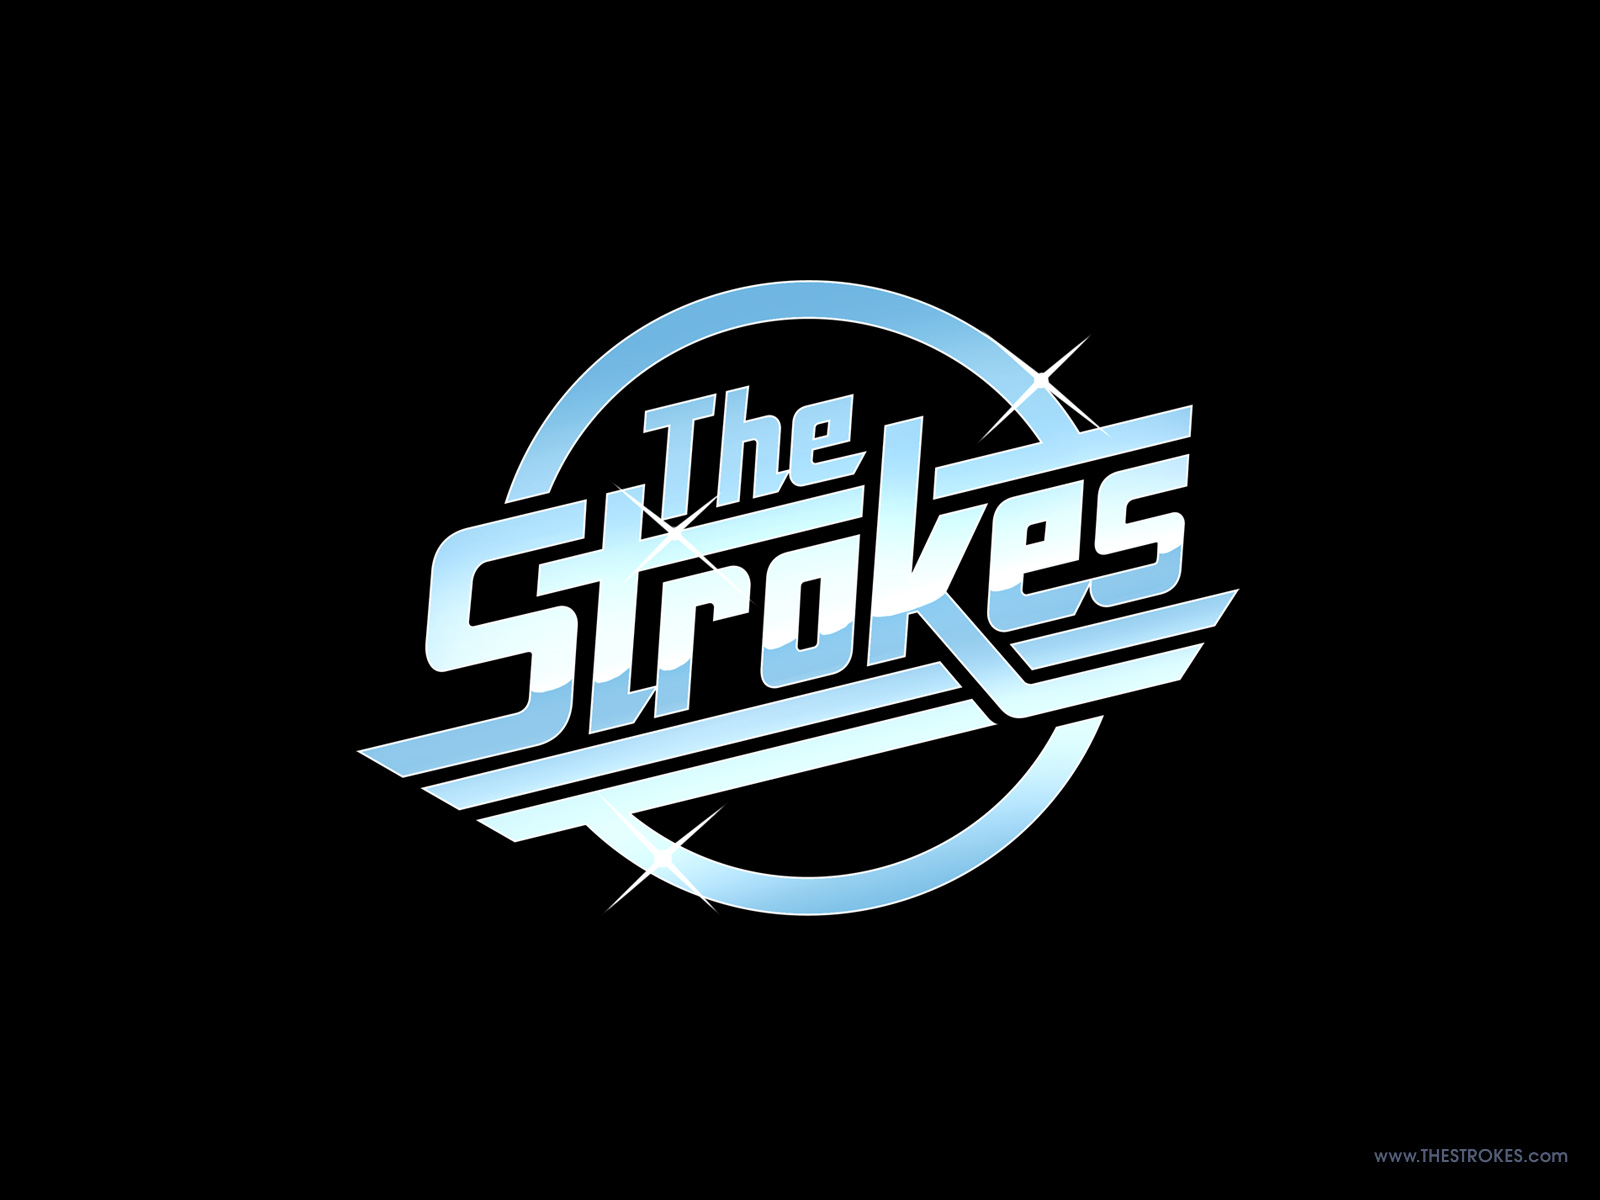 Someone please tell me what is The Strokes font?